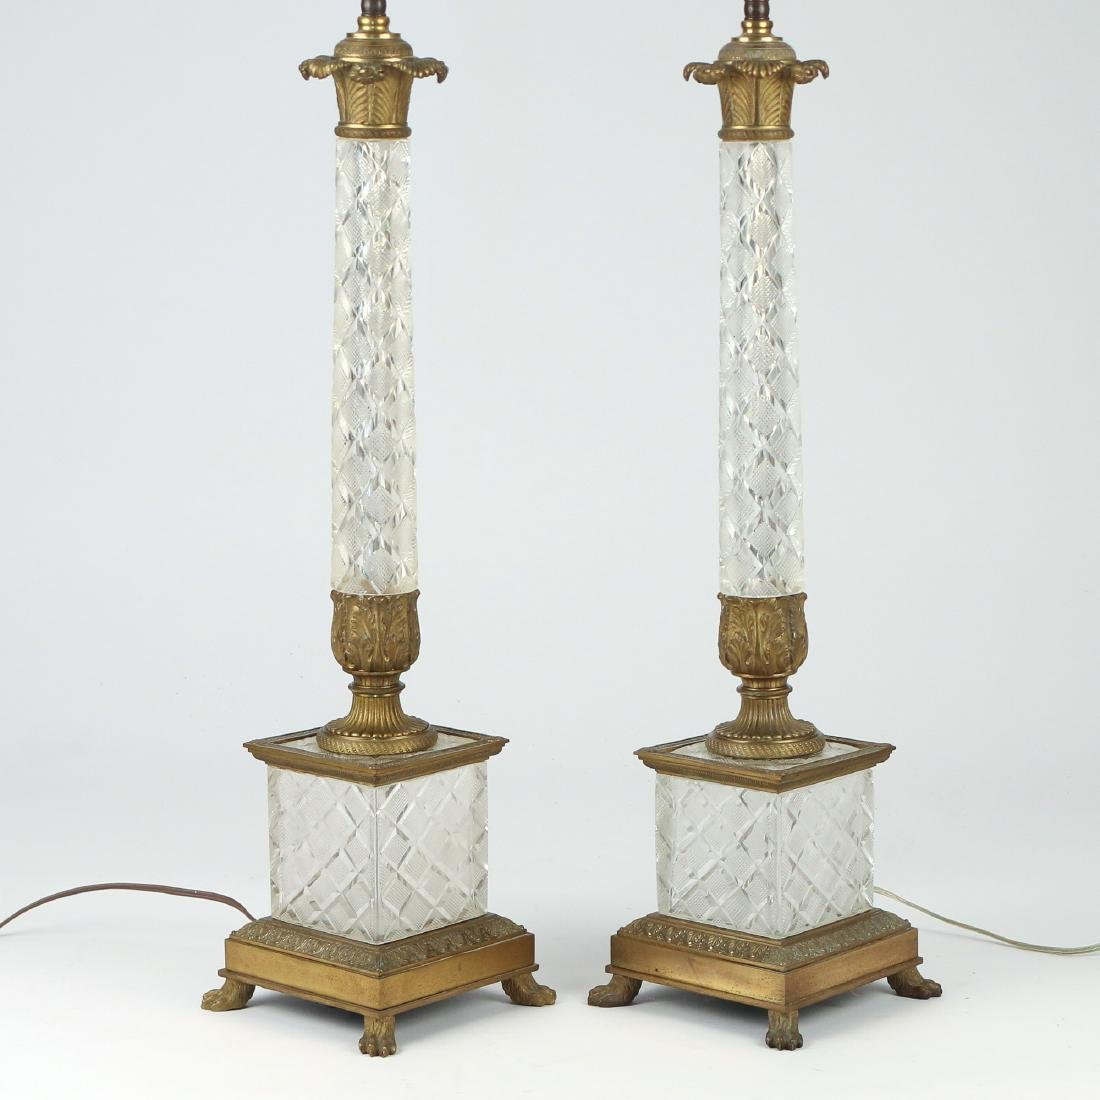 PAIR CUT CRYSTAL COLUMN-FORM TABLE LAMPS